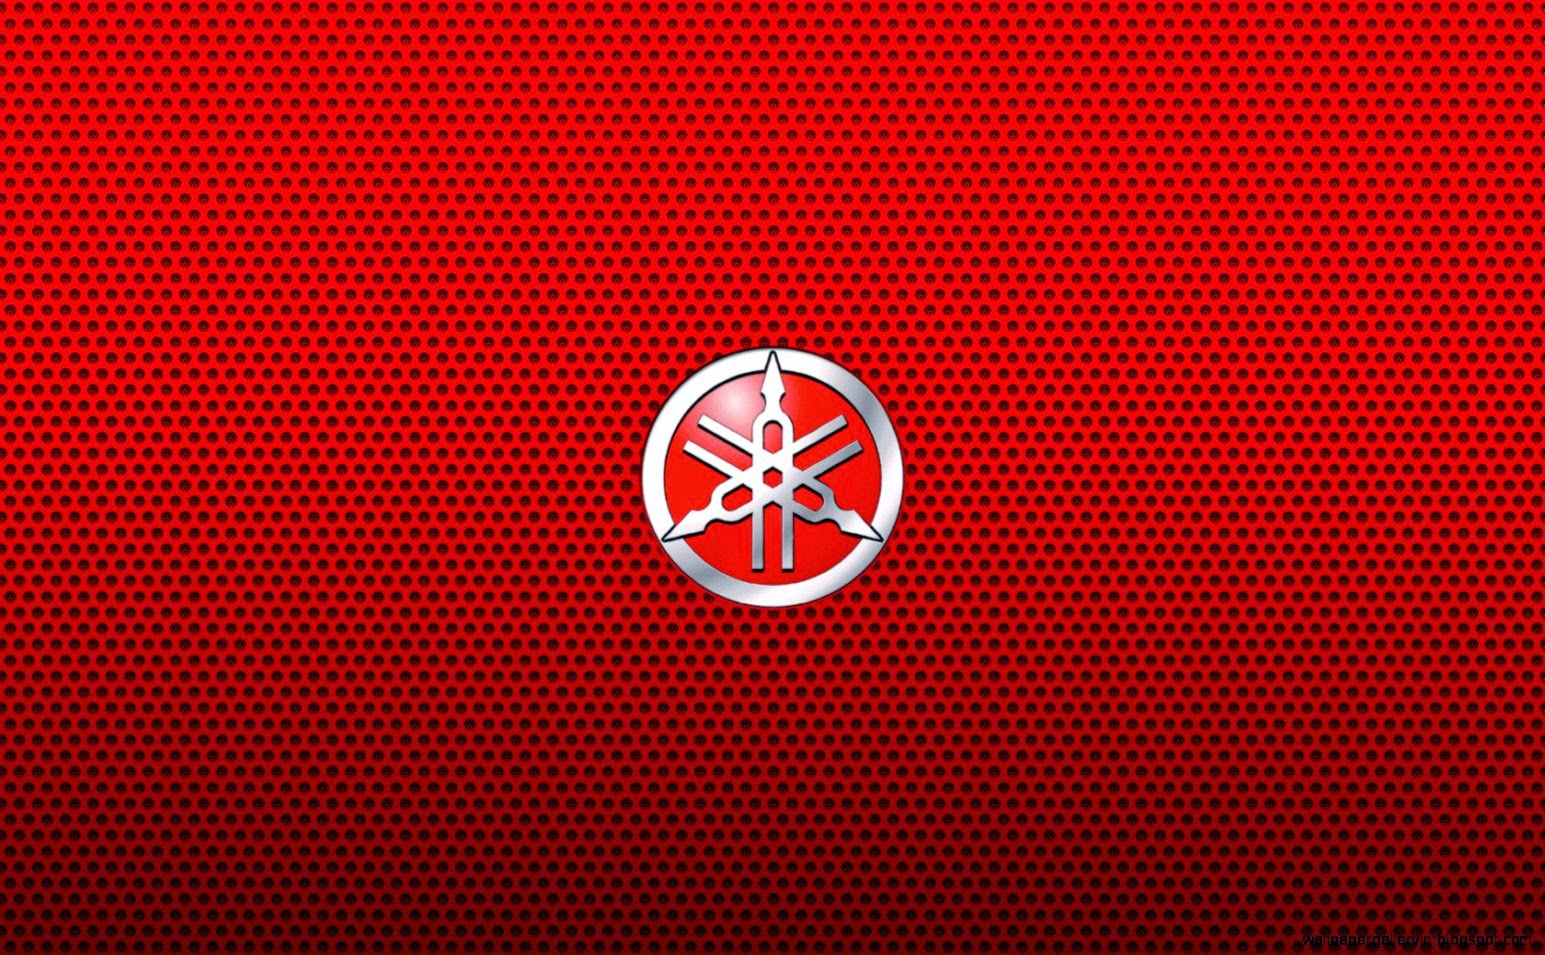 gallery for yamaha symbol wallpaper